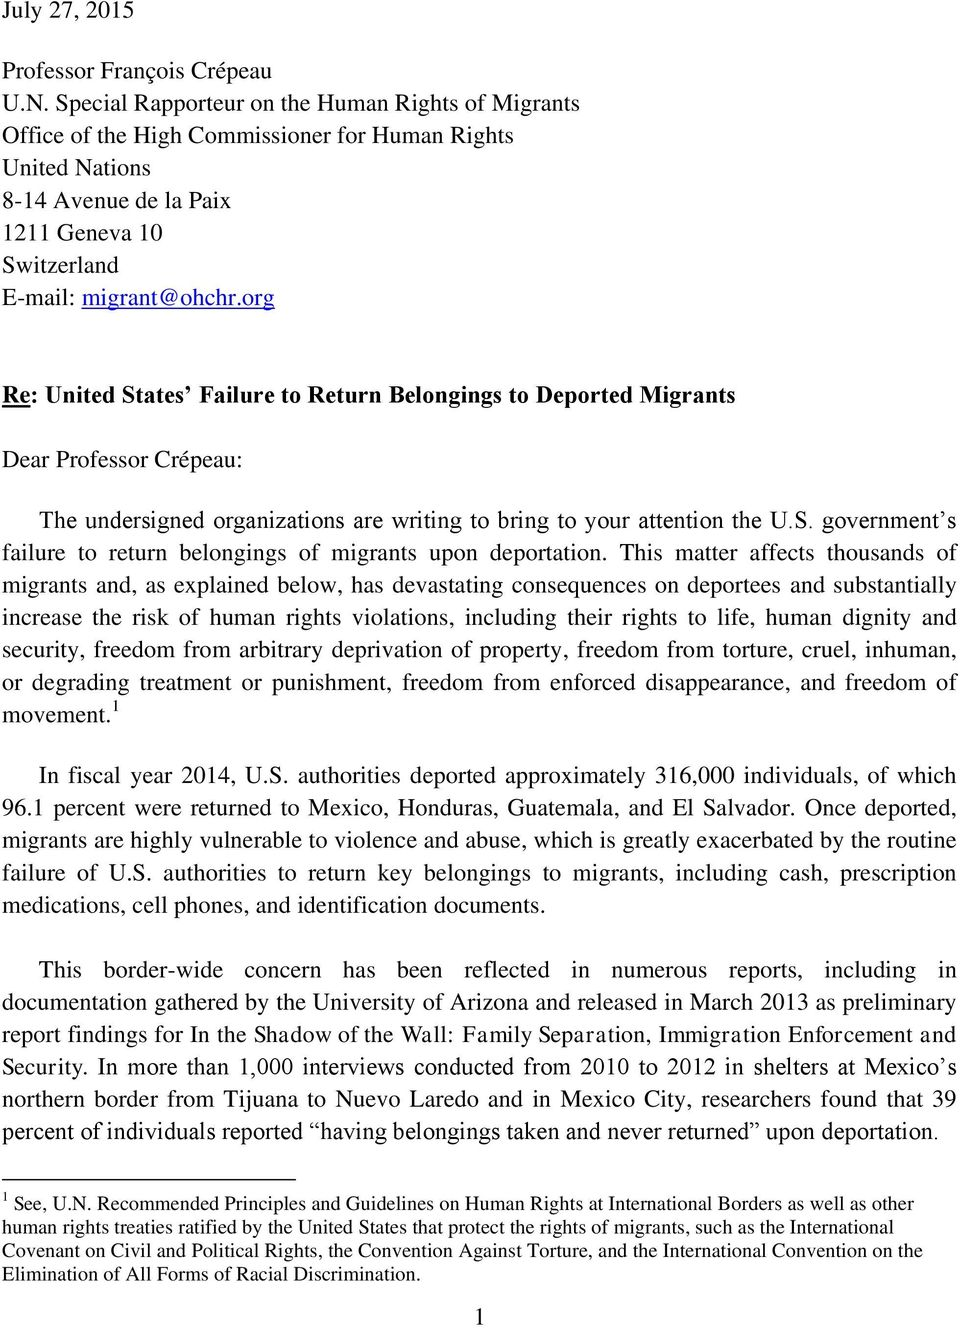 org Re: United States Failure to Return Belongings to Deported Migrants Dear Professor Crépeau: The undersigned organizations are writing to bring to your attention the U.S. government s failure to return belongings of migrants upon deportation.